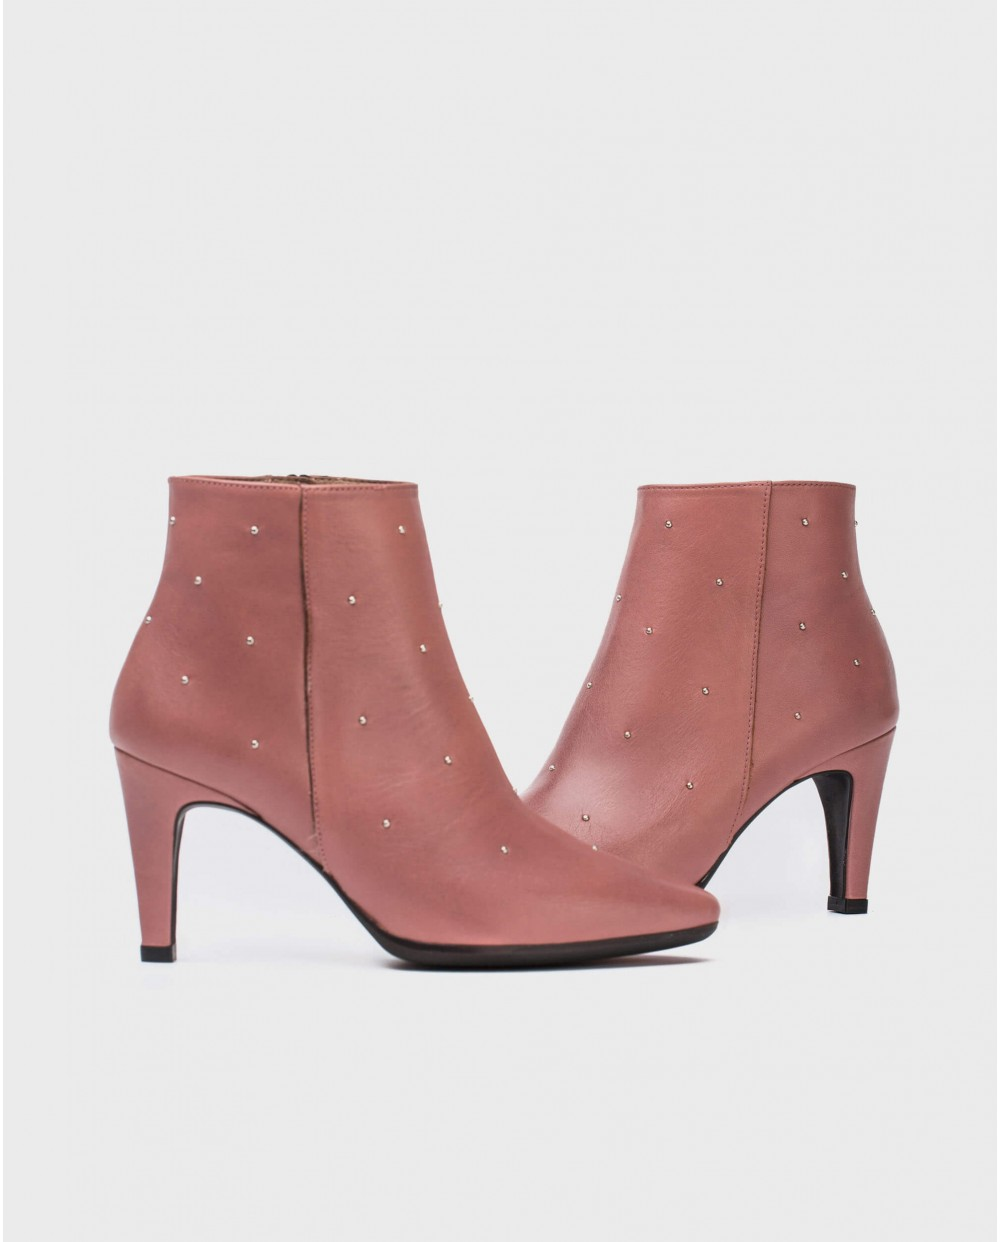 Wonders-Outlet Women-Ankle boot with metallic details